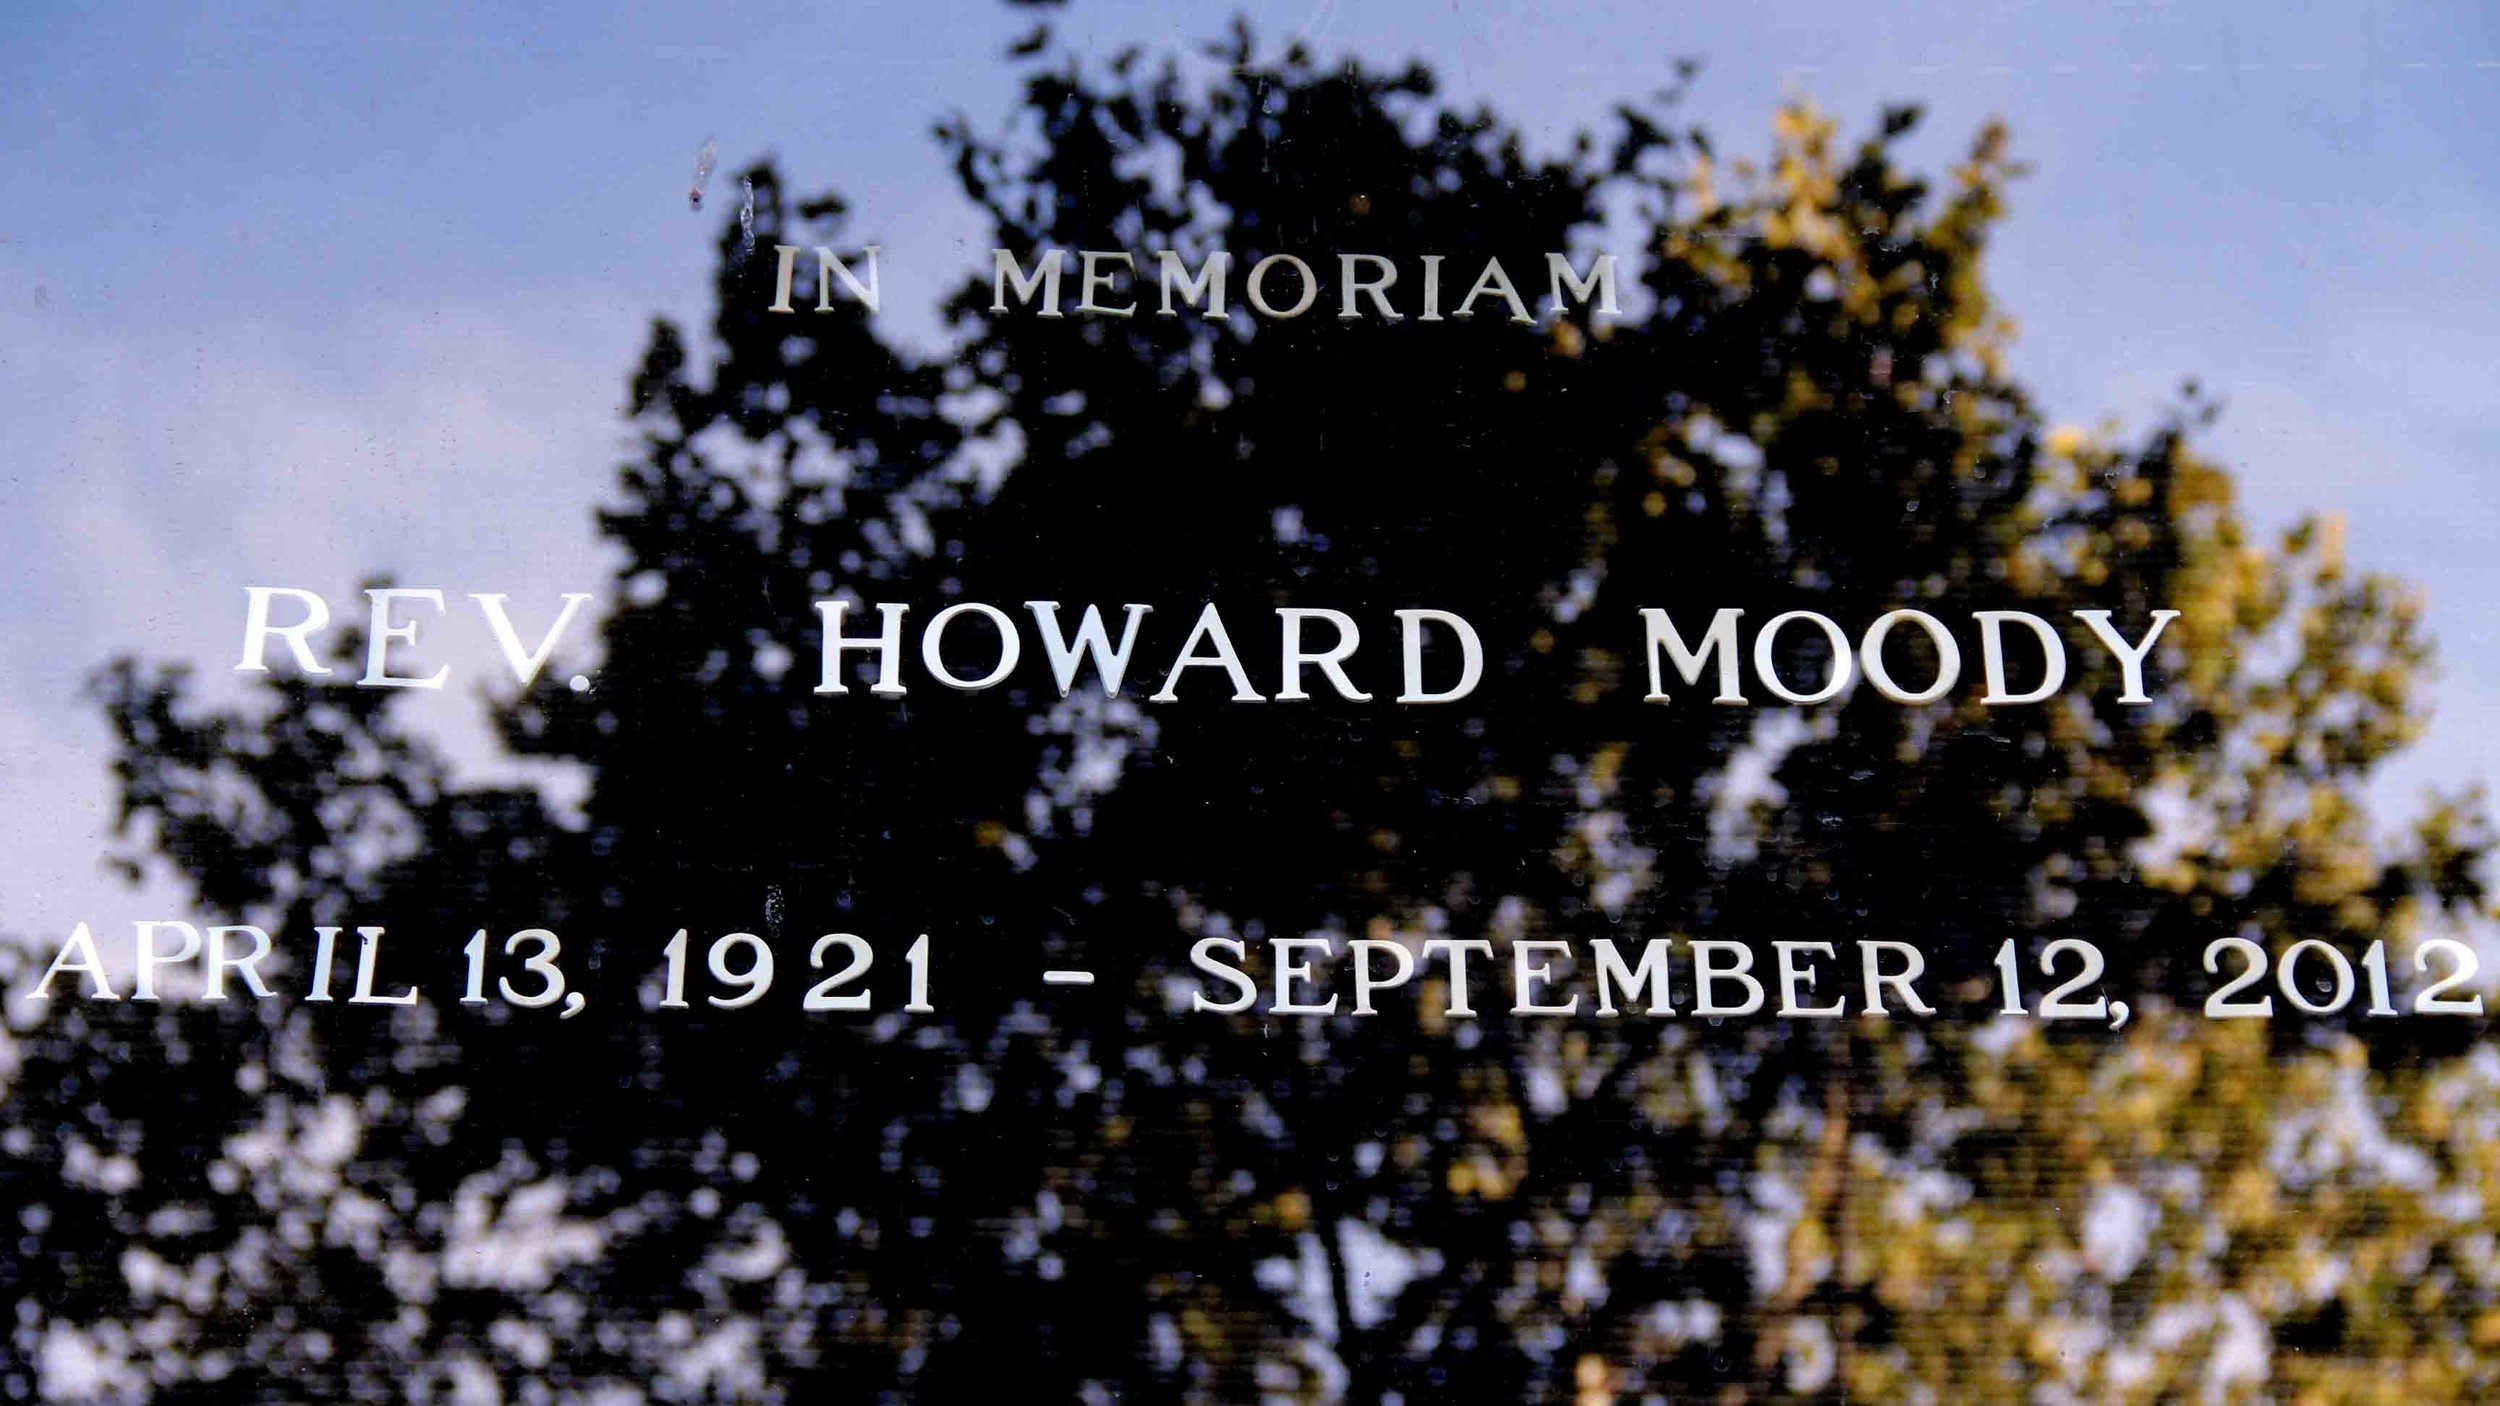 rev howard moody.jpg